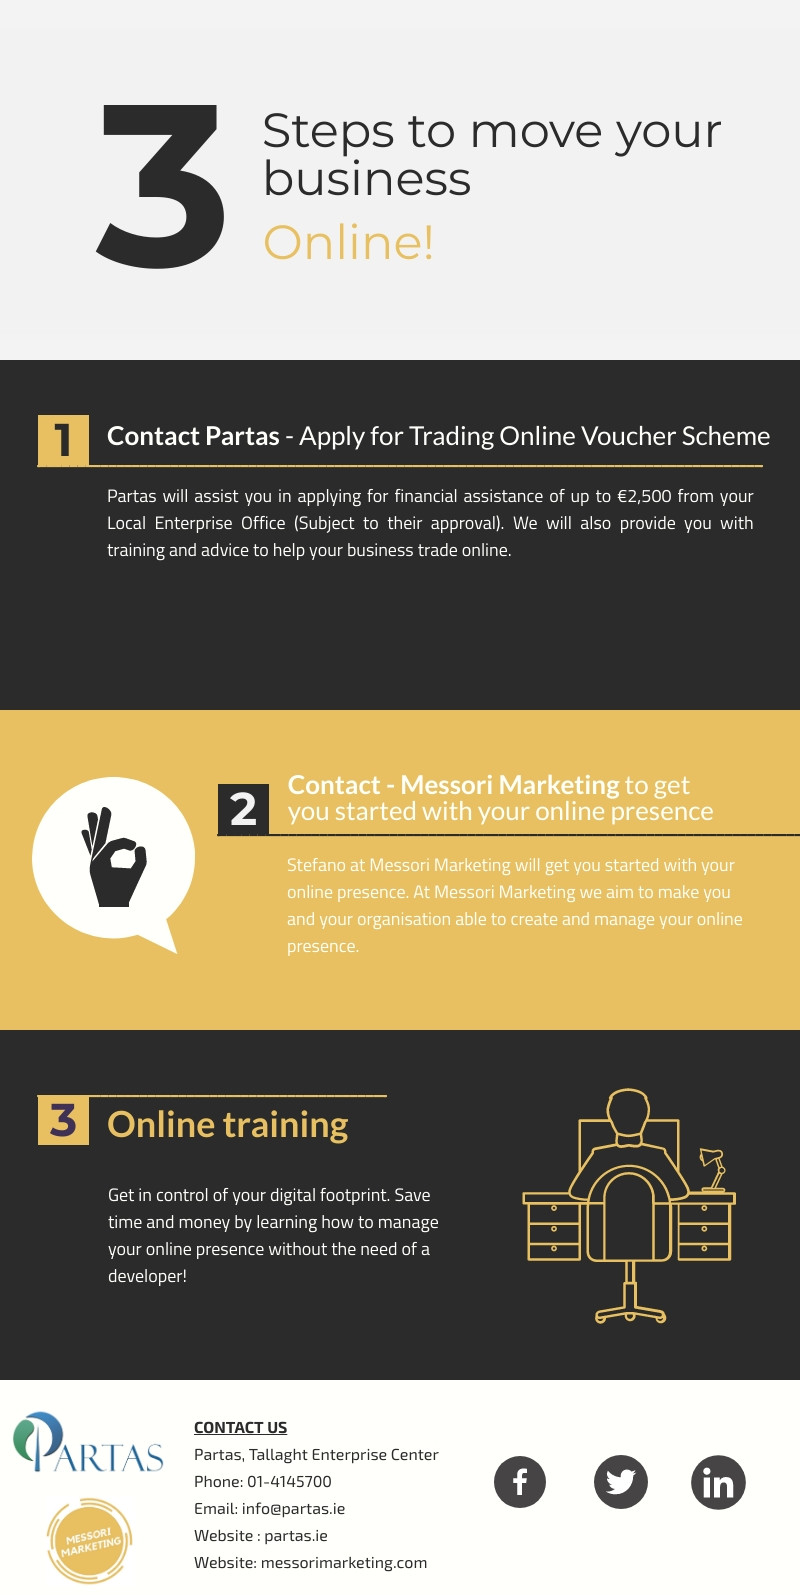 Messori Marketing and Partas, Move your business online